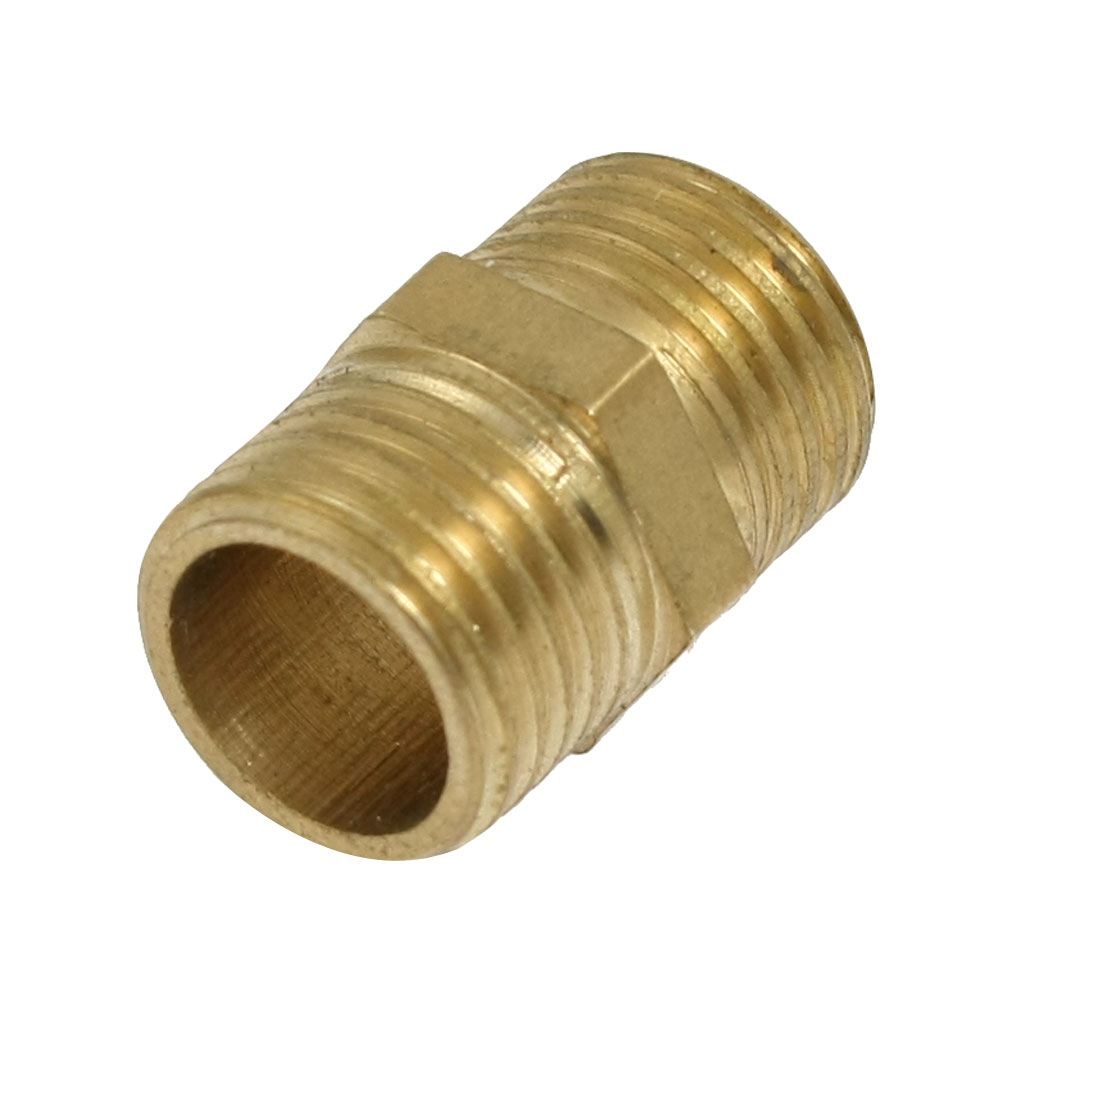 "Air Pneumatic Piping 31/64"" Male to Male Hex Nipple Equal Connector Brass Tone"